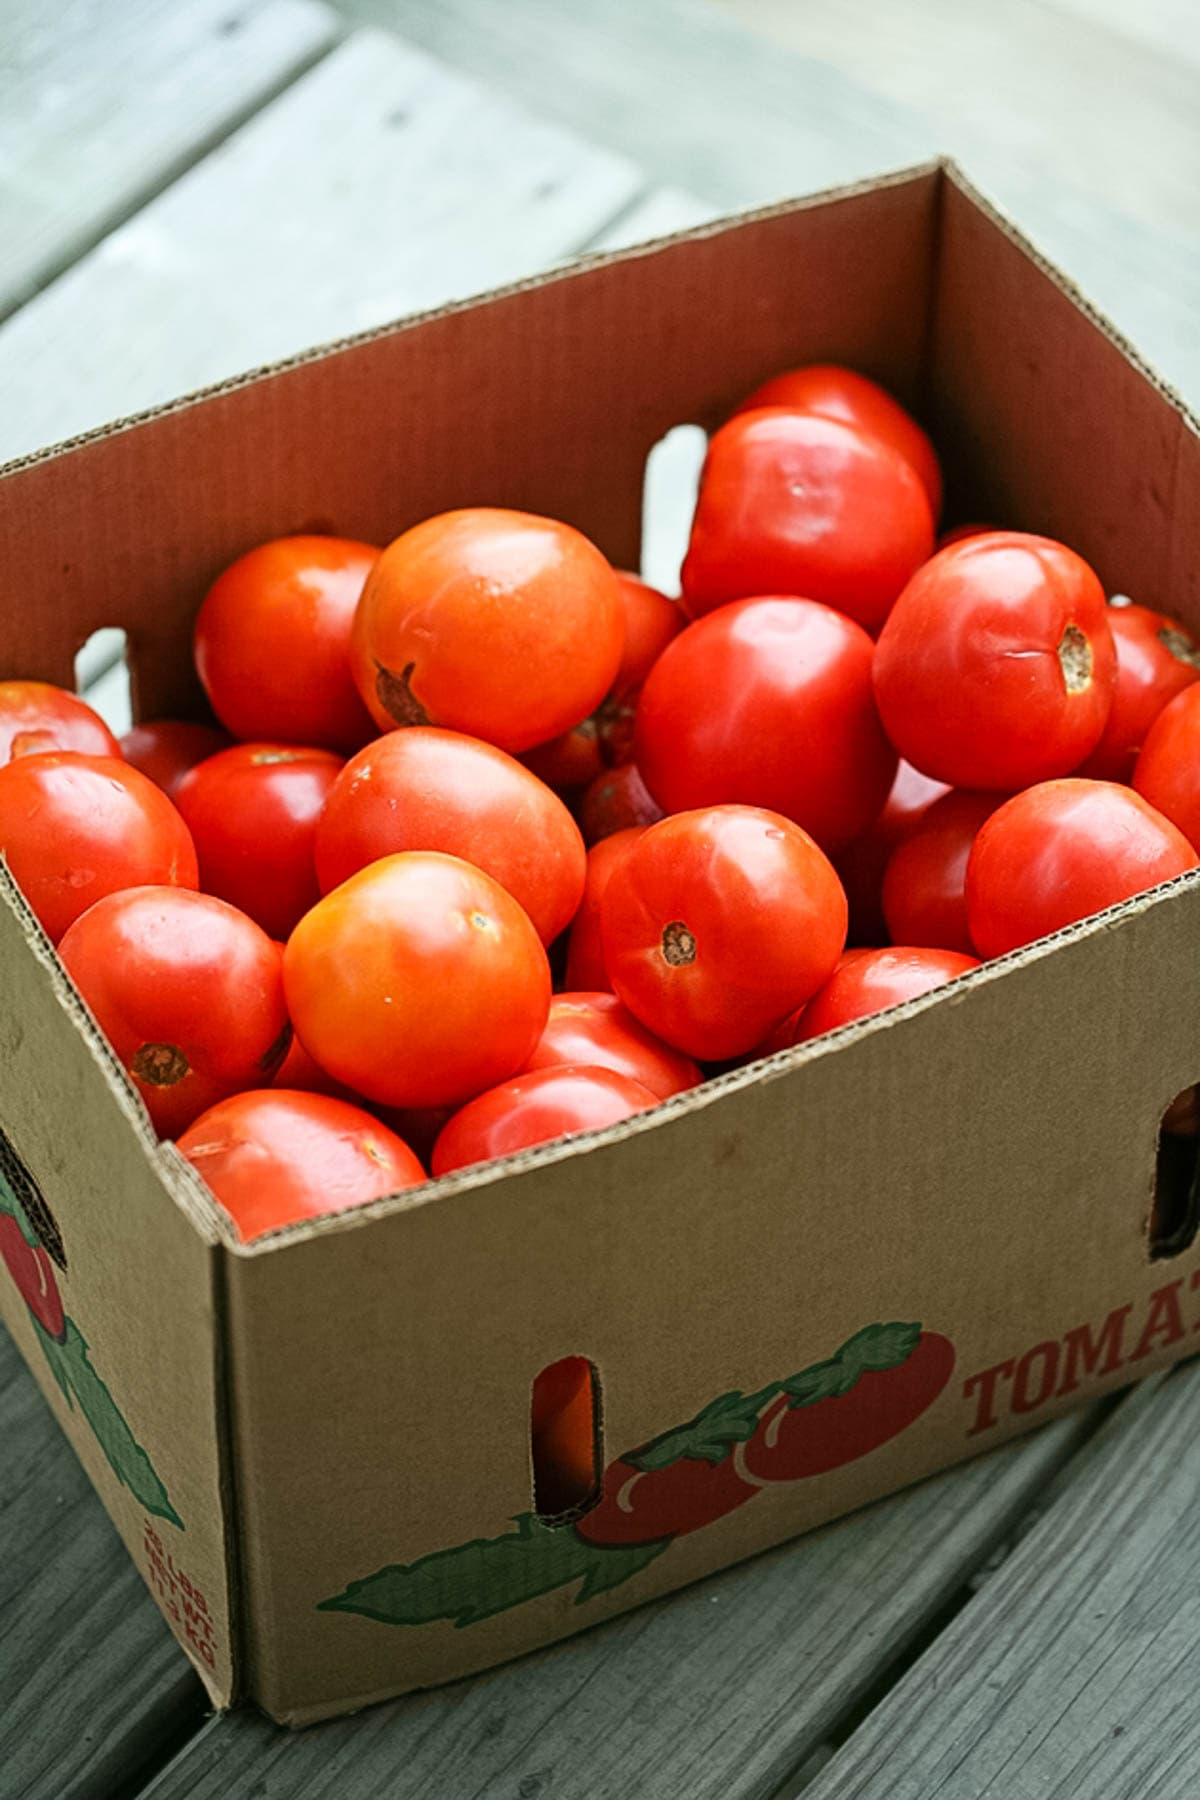 A box of ripe tomatoes for sauce.